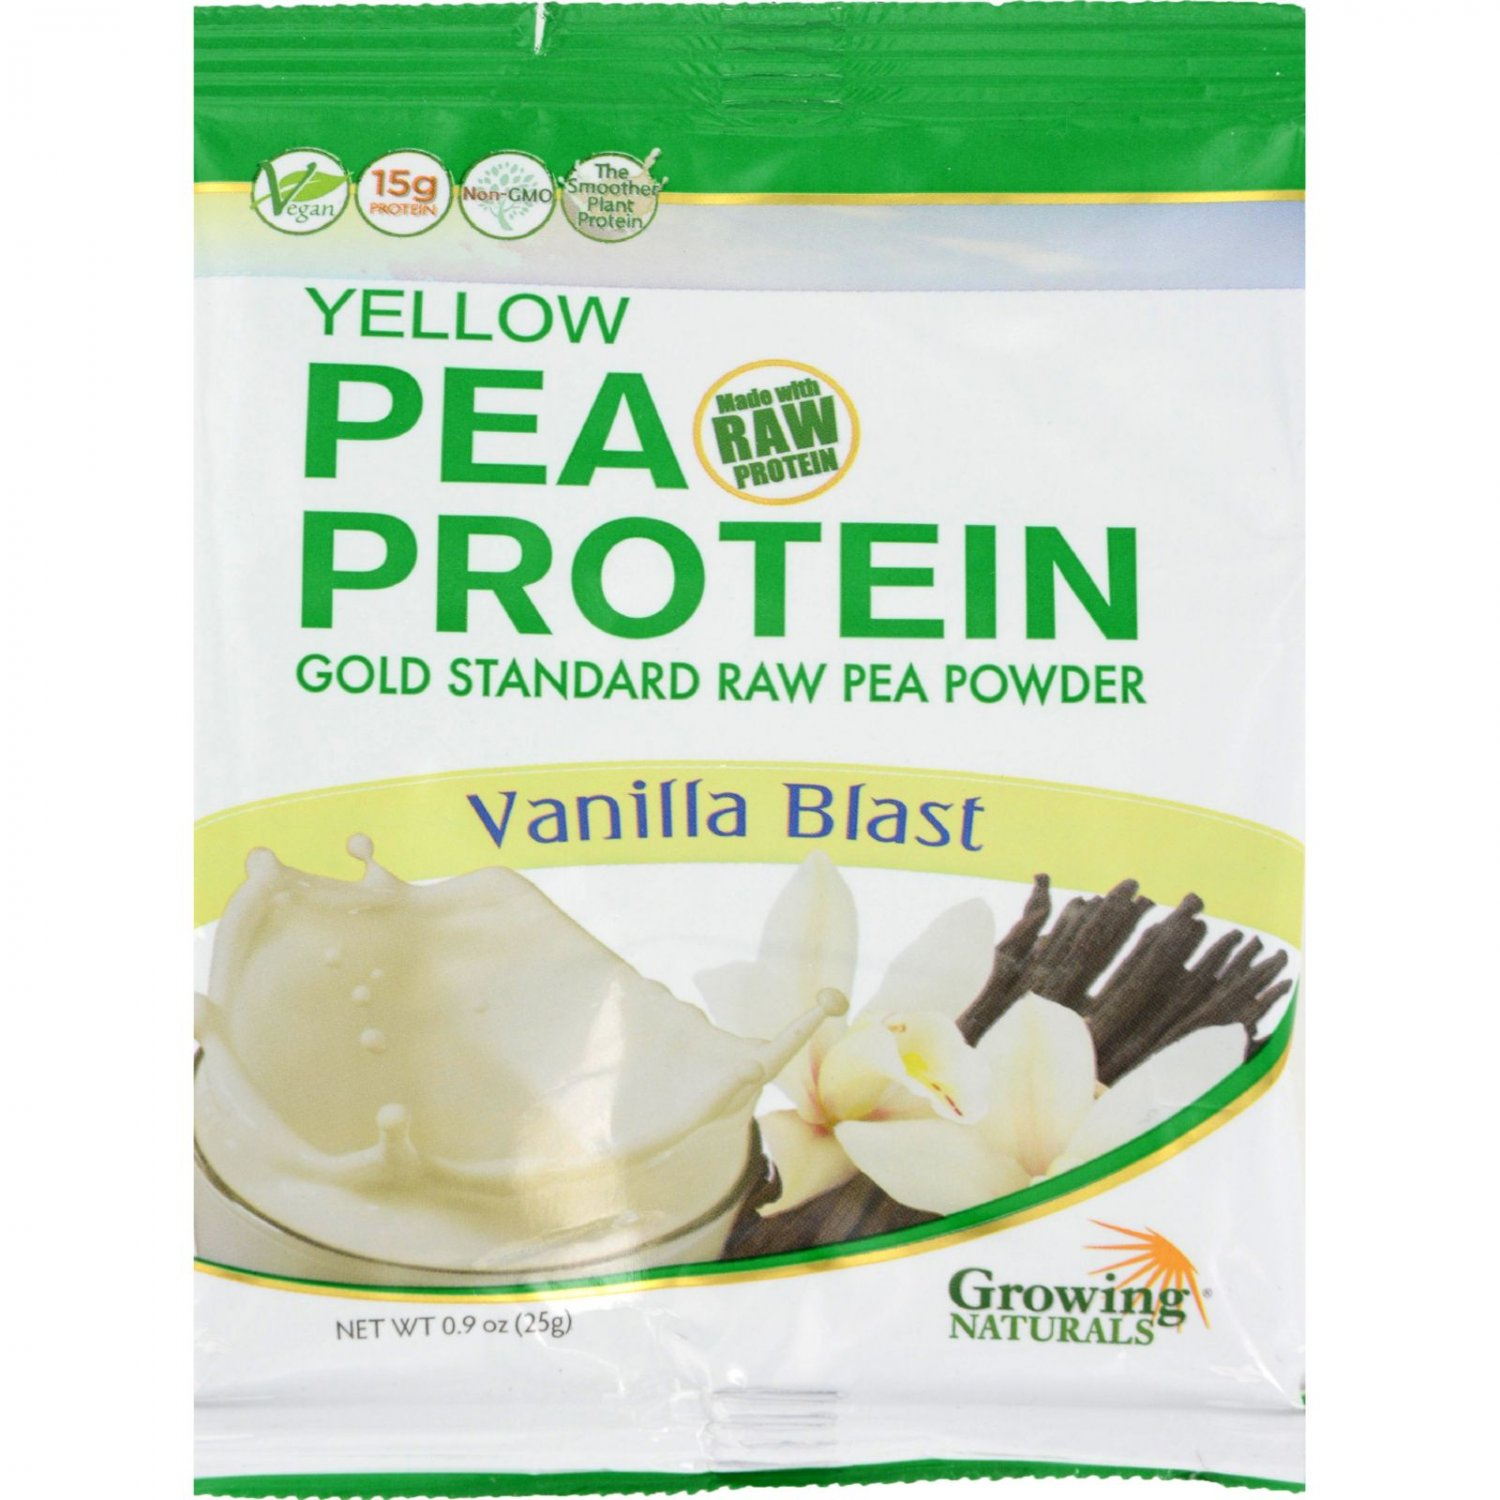 Growing Naturals Pea Protein Powder - Vanilla Blast Single Serve Packet - .9 oz - Case of 12